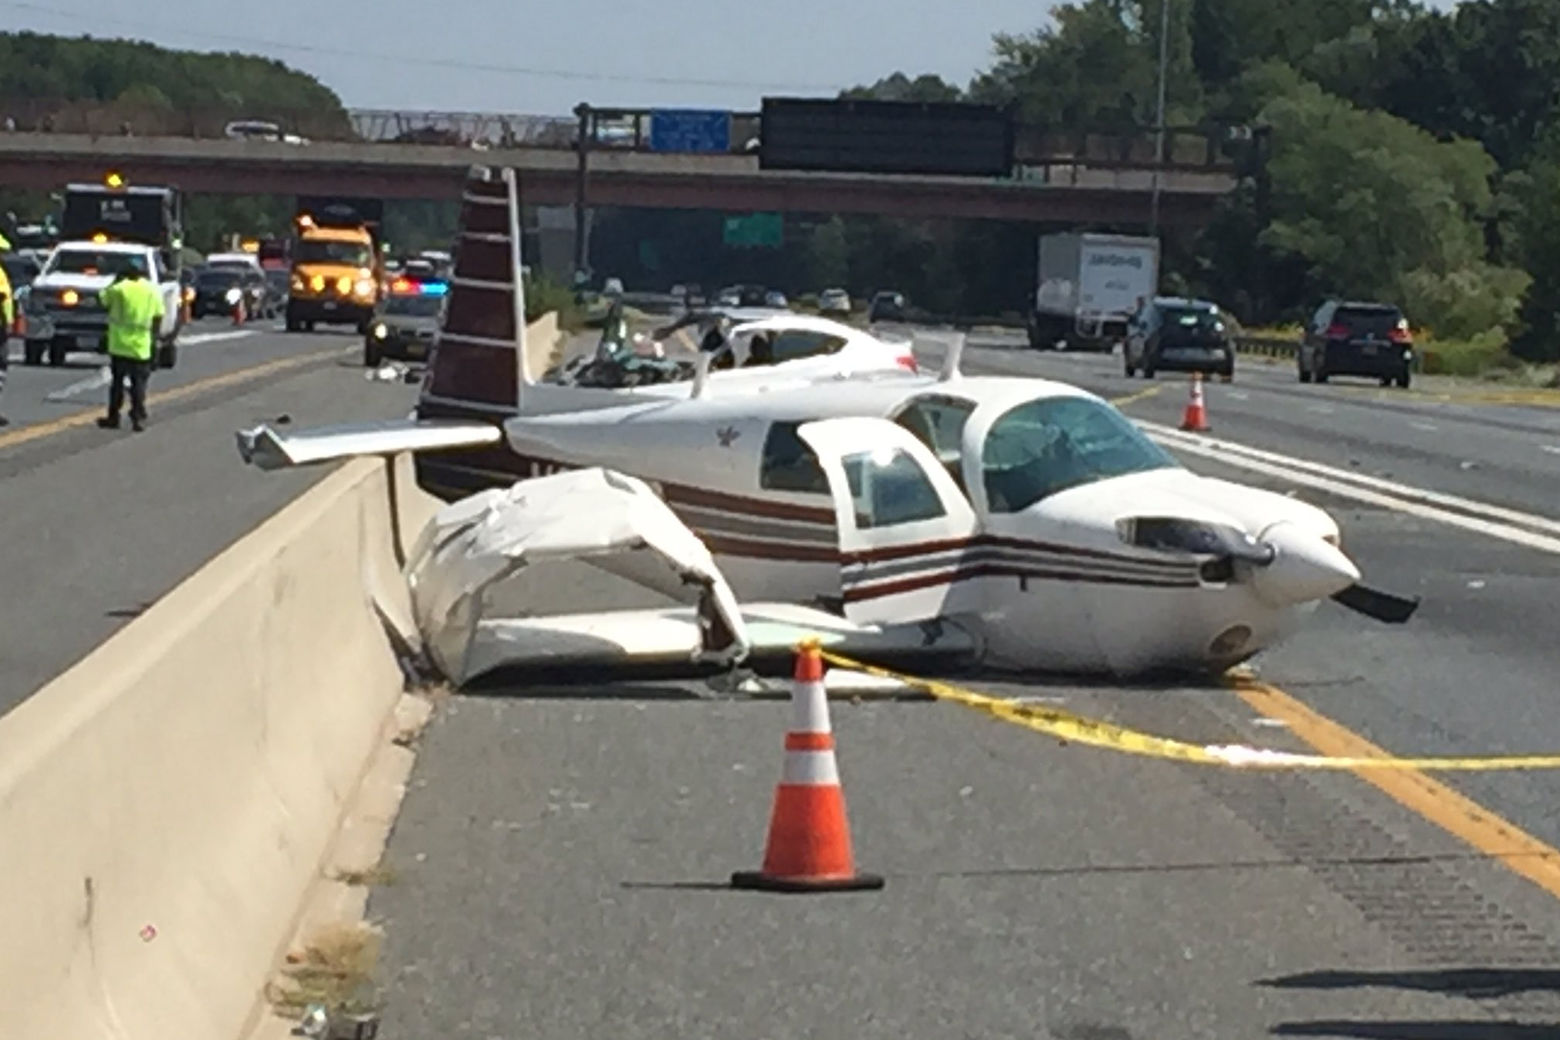 The plane crashed after taking off from nearby Freeway Airport, authorities said. (WTOP/John Domen)